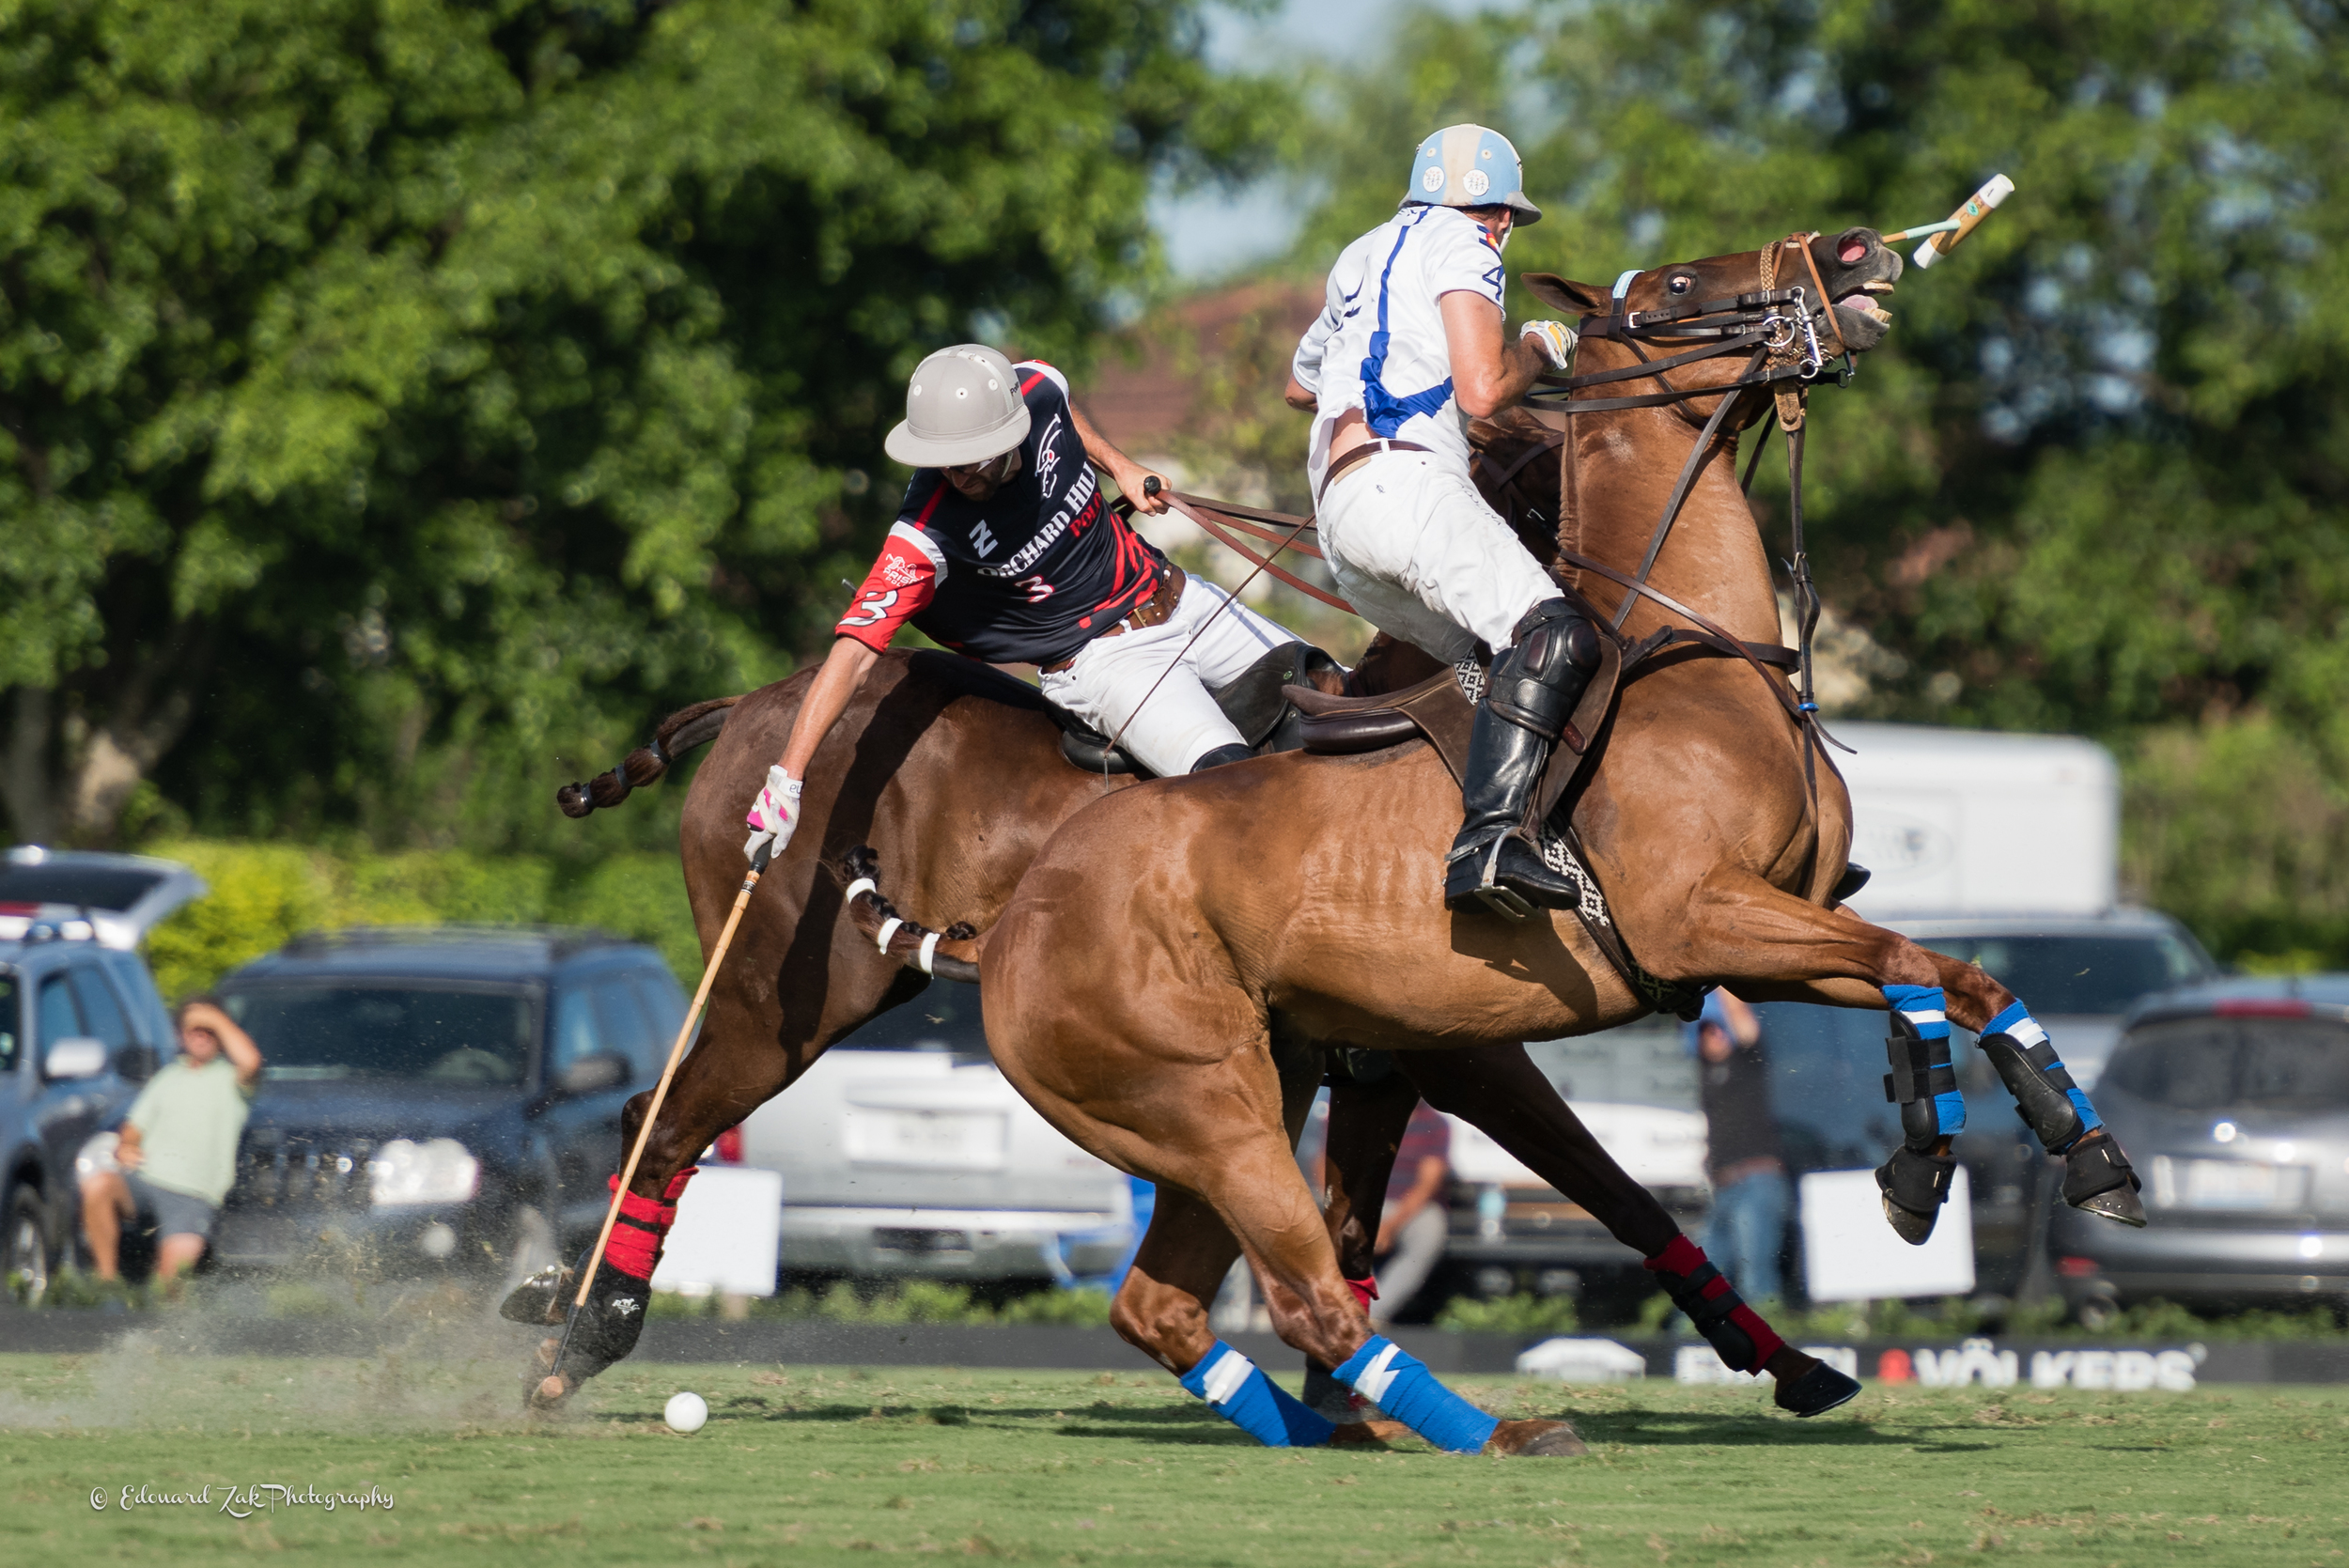 20150419-Orchard Hill Vs. ValienteUSO-6447-2.jpg